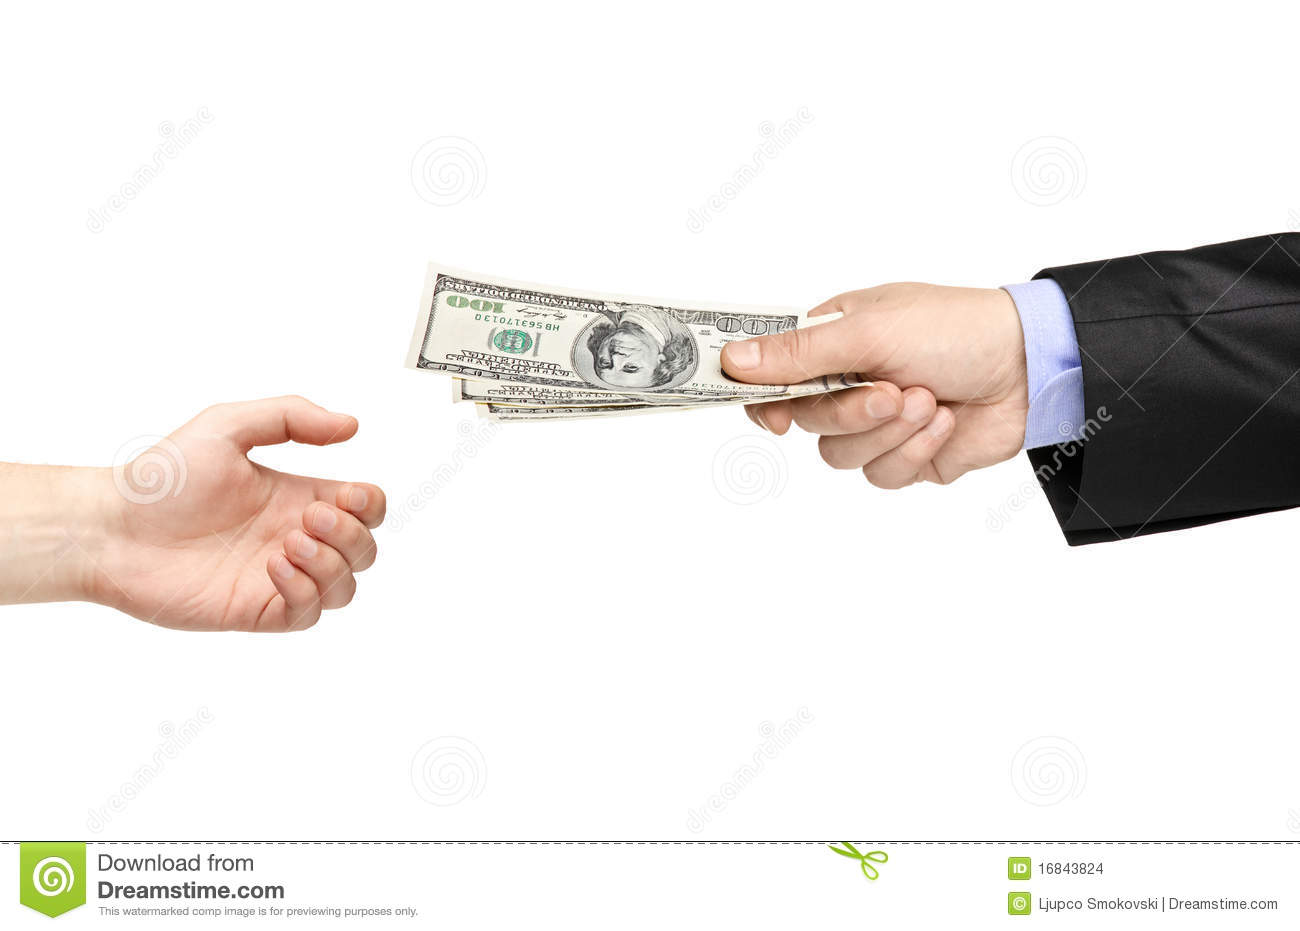 Hand Handing Over Money To Another Hand Stock Images - Image: 16843824